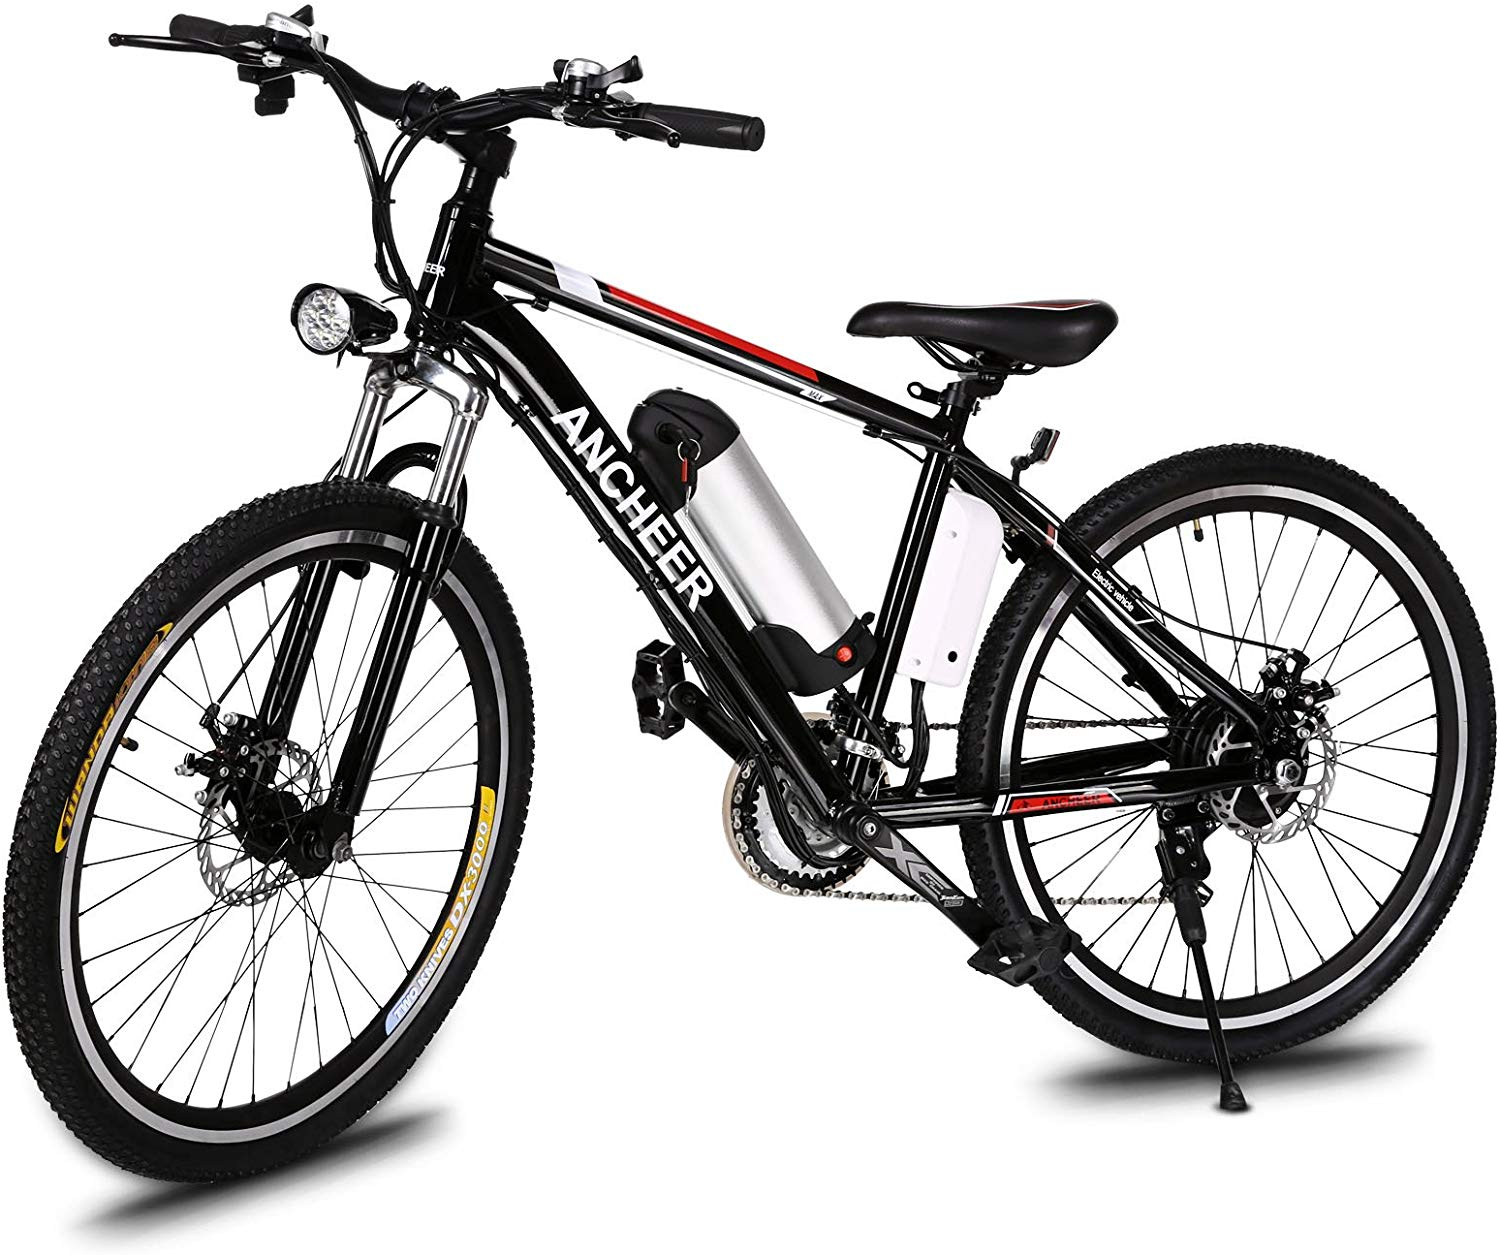 Ancheer 2019 Apex Electric Bike Black Friday Cyber Monday 2019